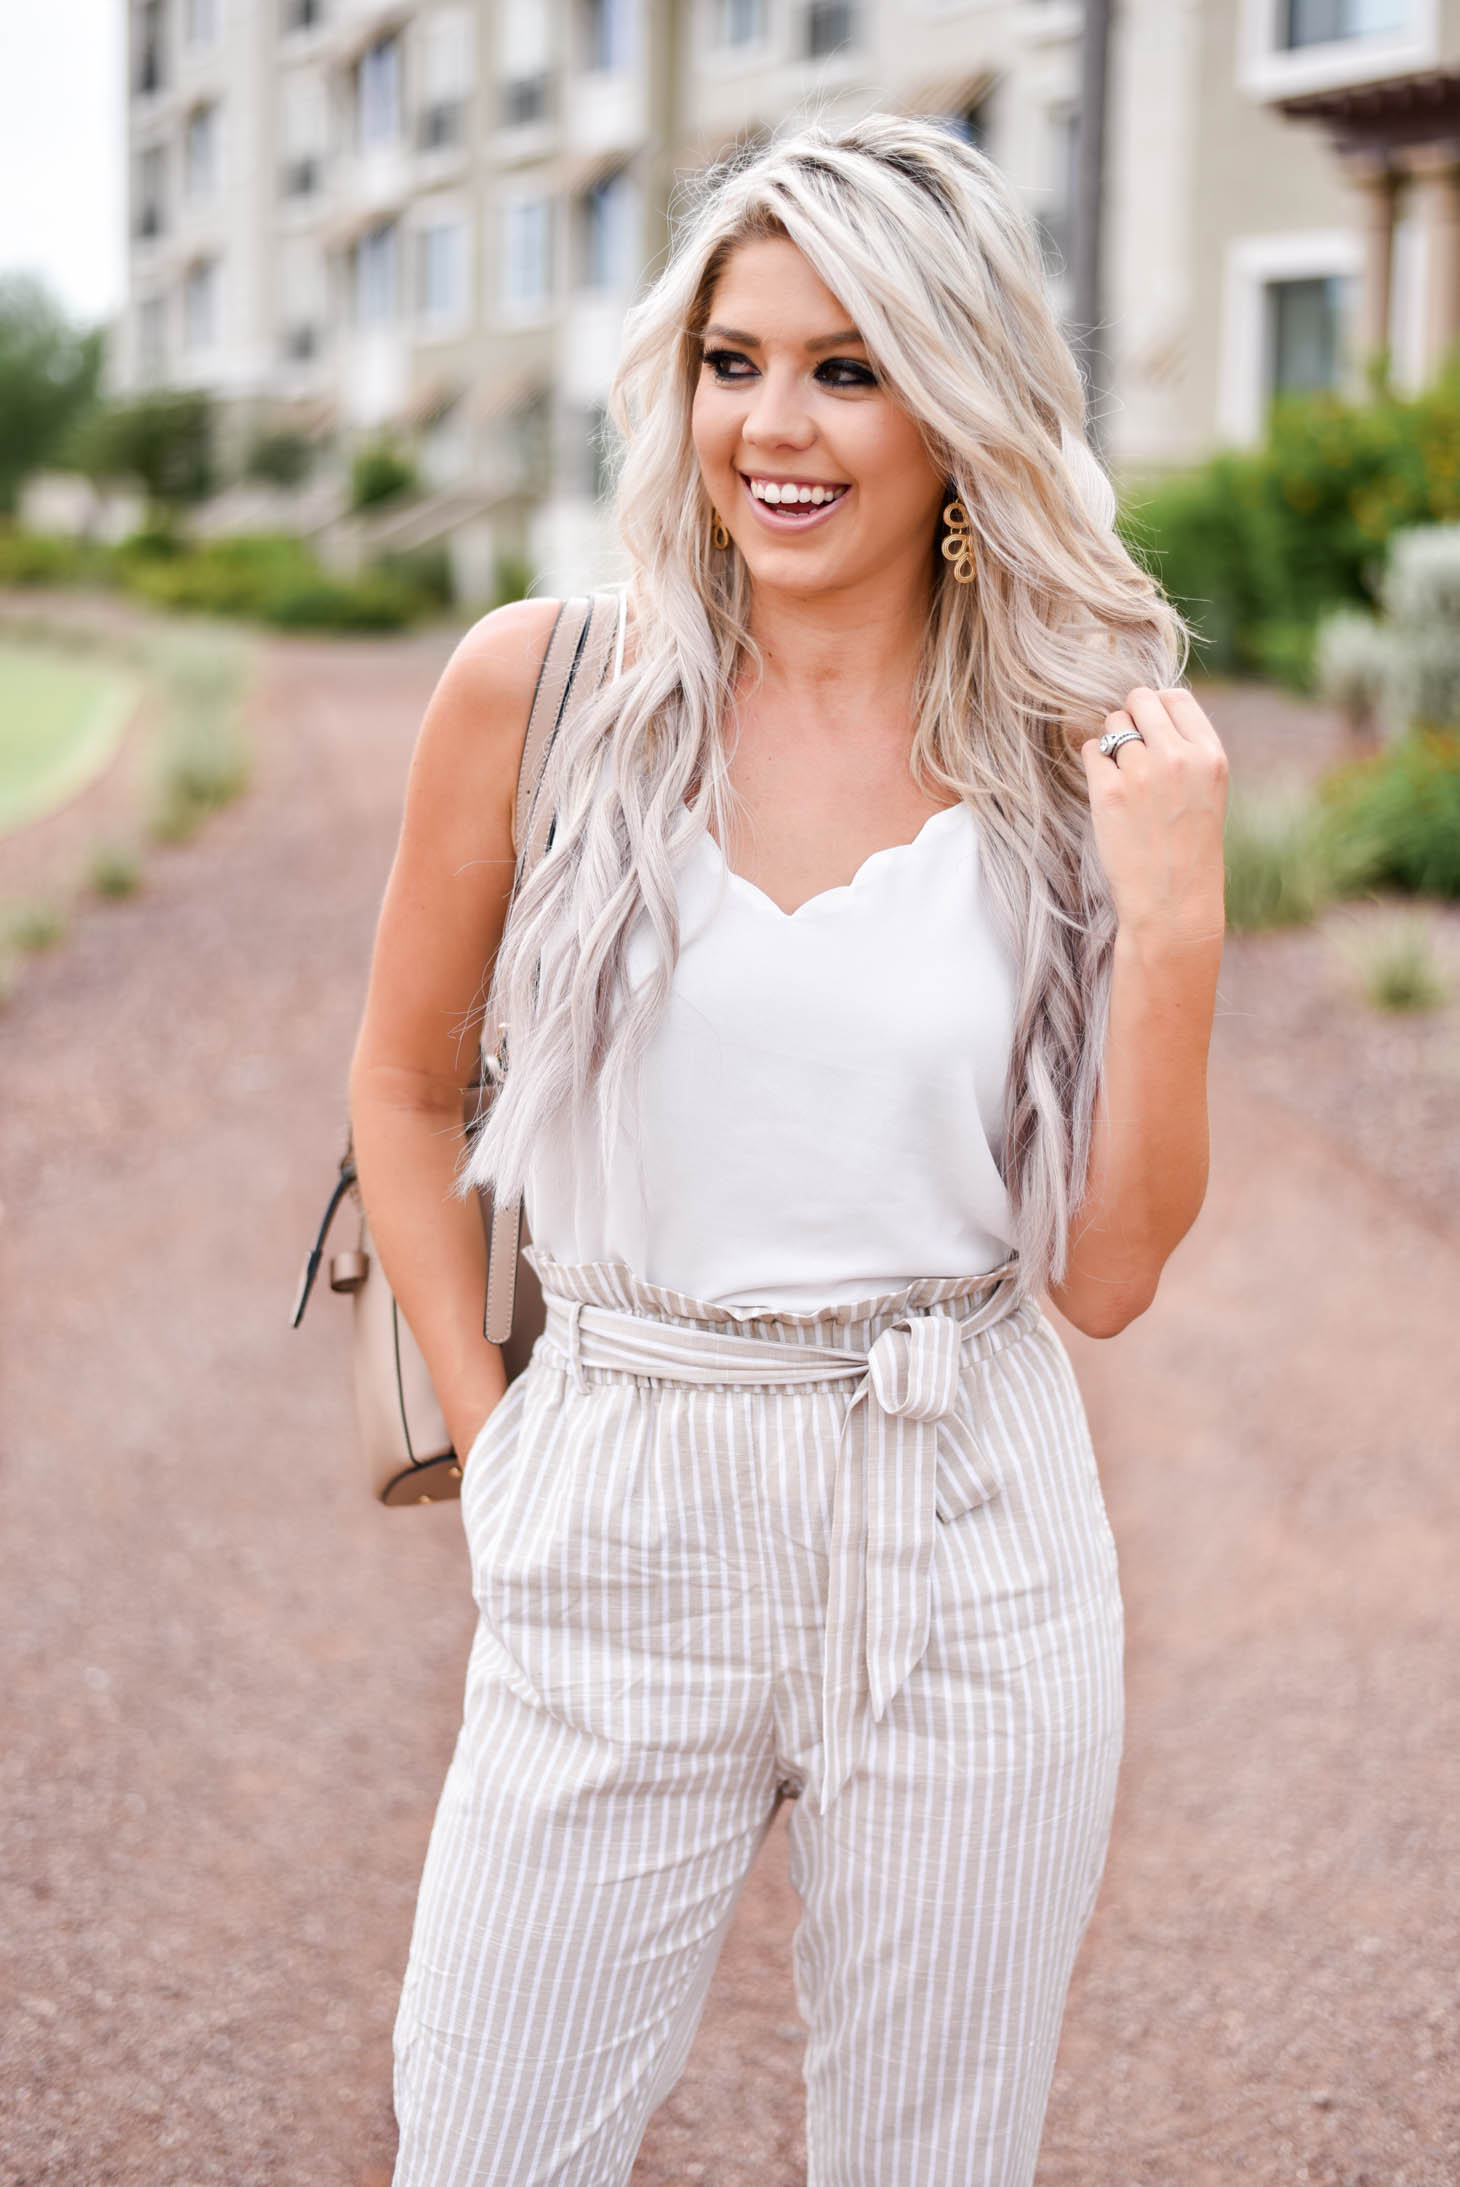 Erin Elizabeth of Wink and a Twirl shares this Red Dress Boutique look with the cutest highwaist pants ad white cami